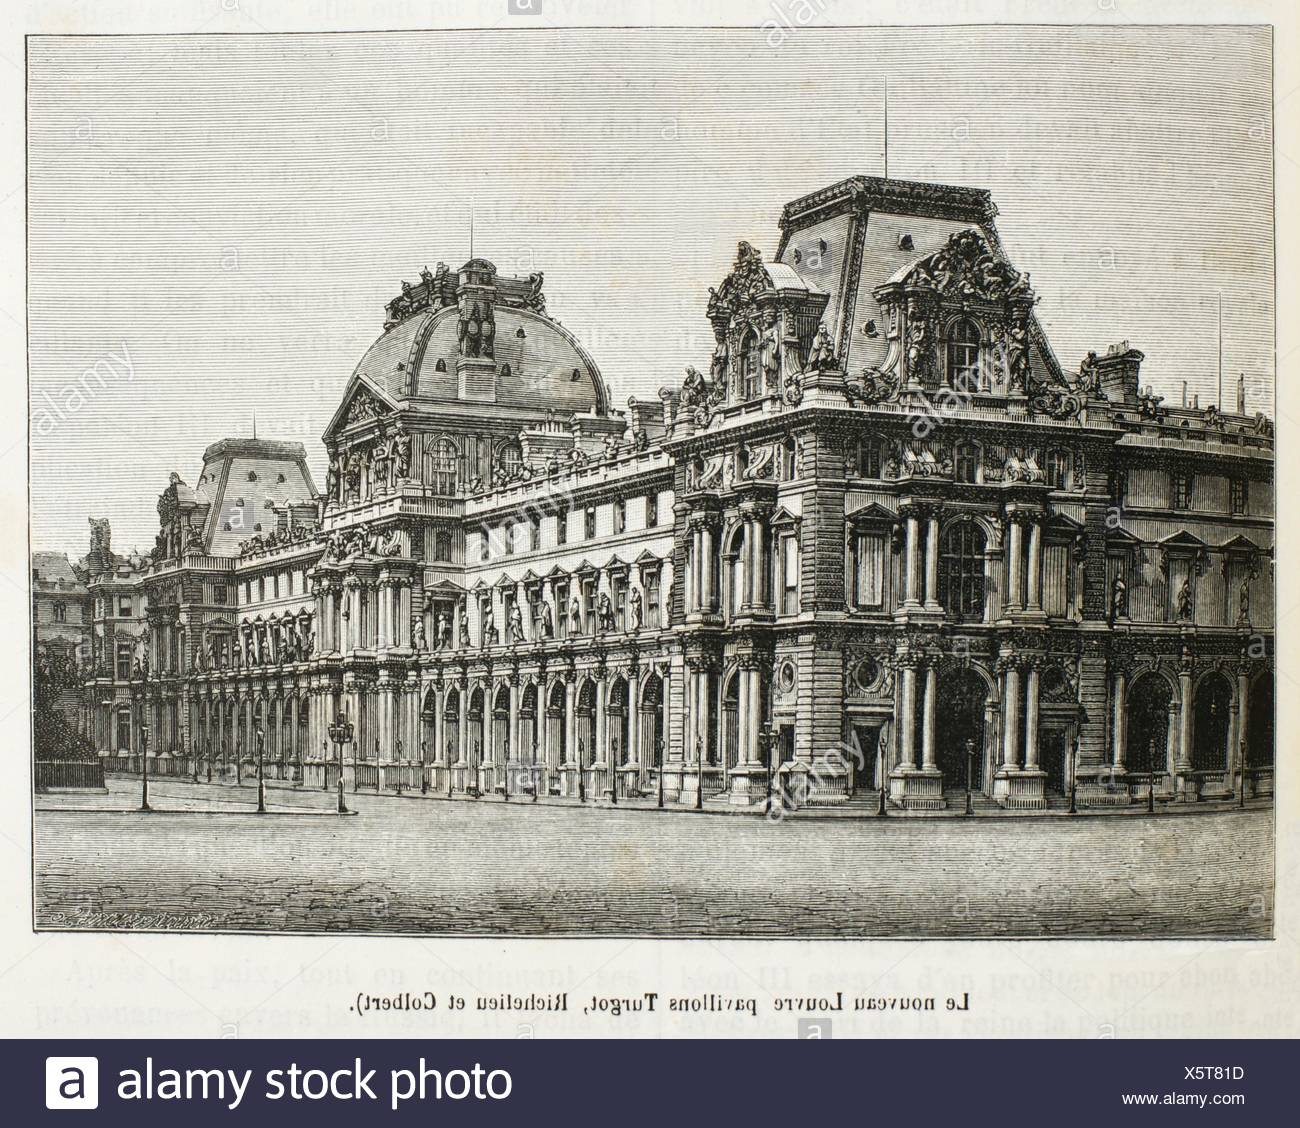 France History 19th Century The Louvre Palace French Palais Du Louvre On The Right Bank Of The Seine In Paris Is A Former Stock Photo Alamy